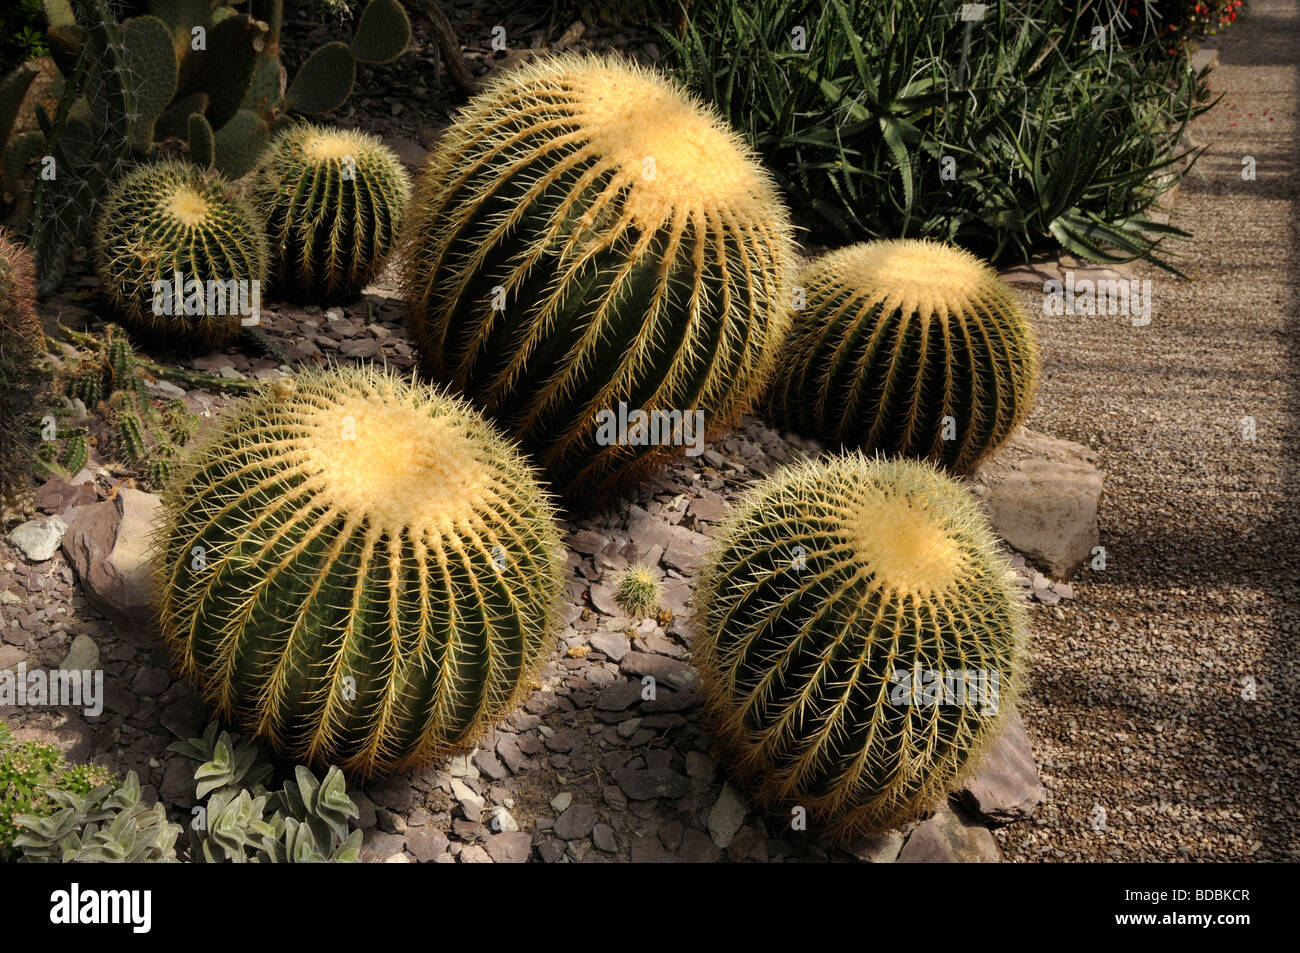 Medicinal Desert Plant High Resolution Stock Photography And Images Alamy